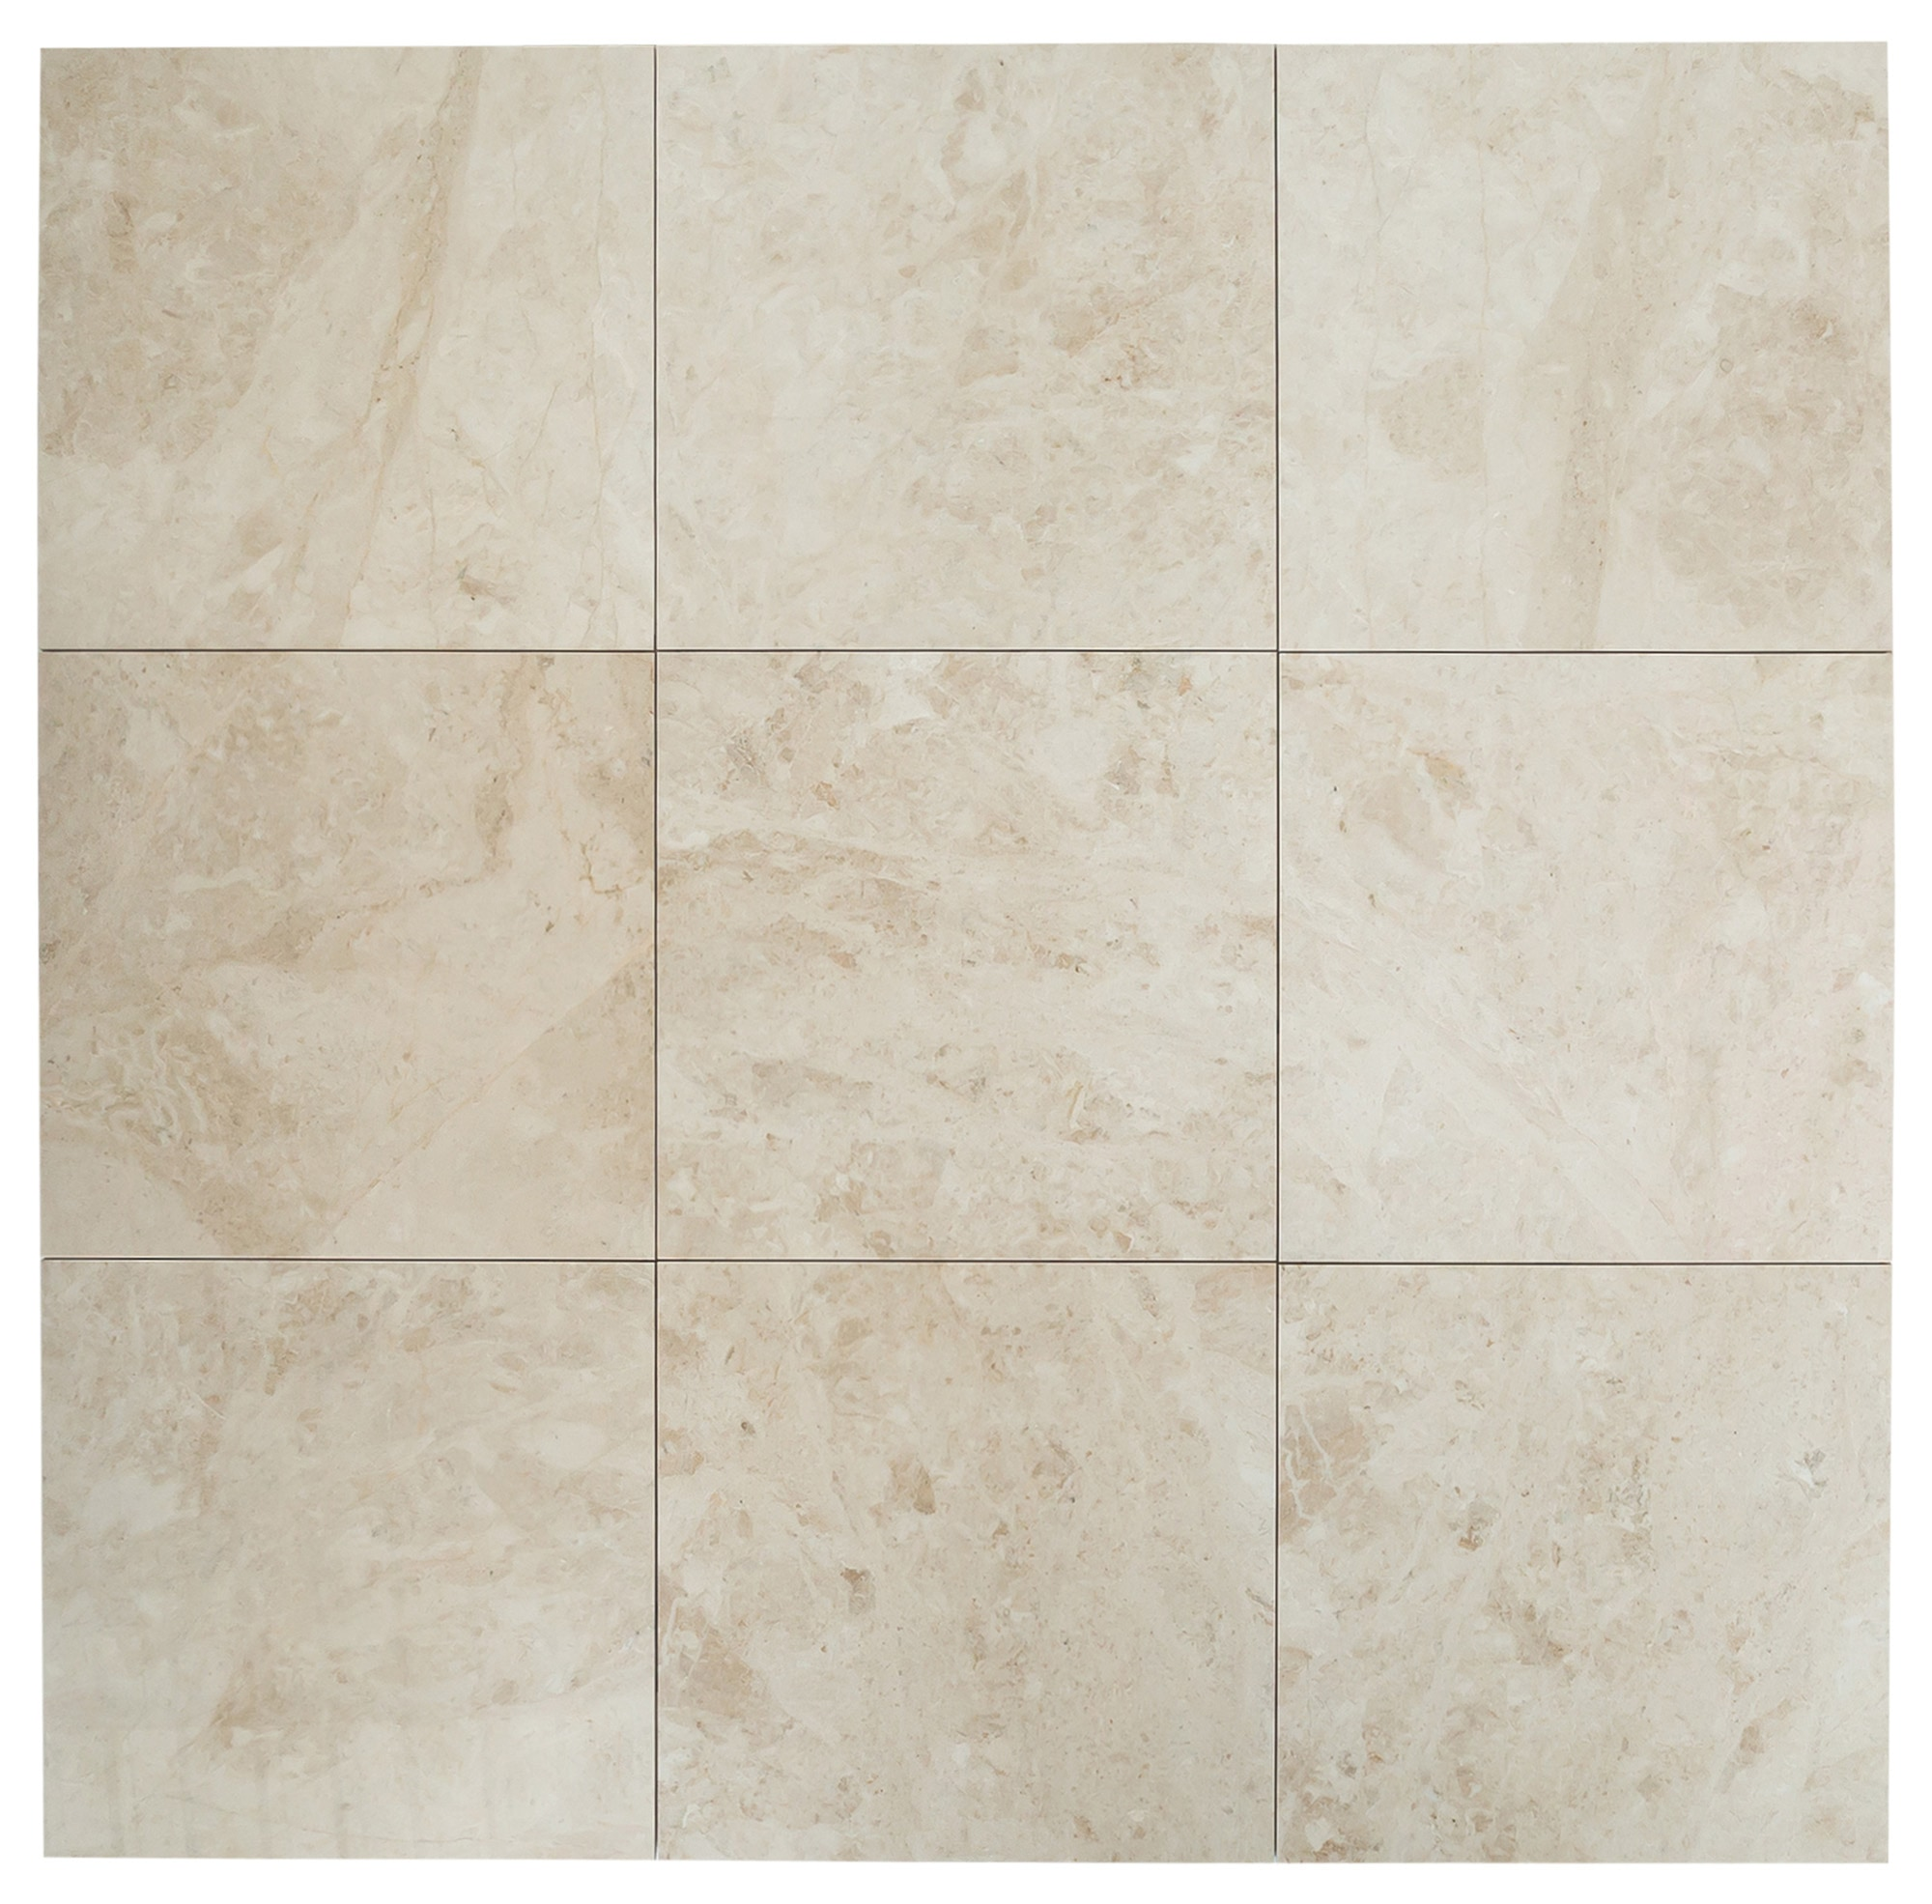 """Cappuccino Light Premium / 24""""x24""""x1/2"""" / Polished Marble Tile 0"""